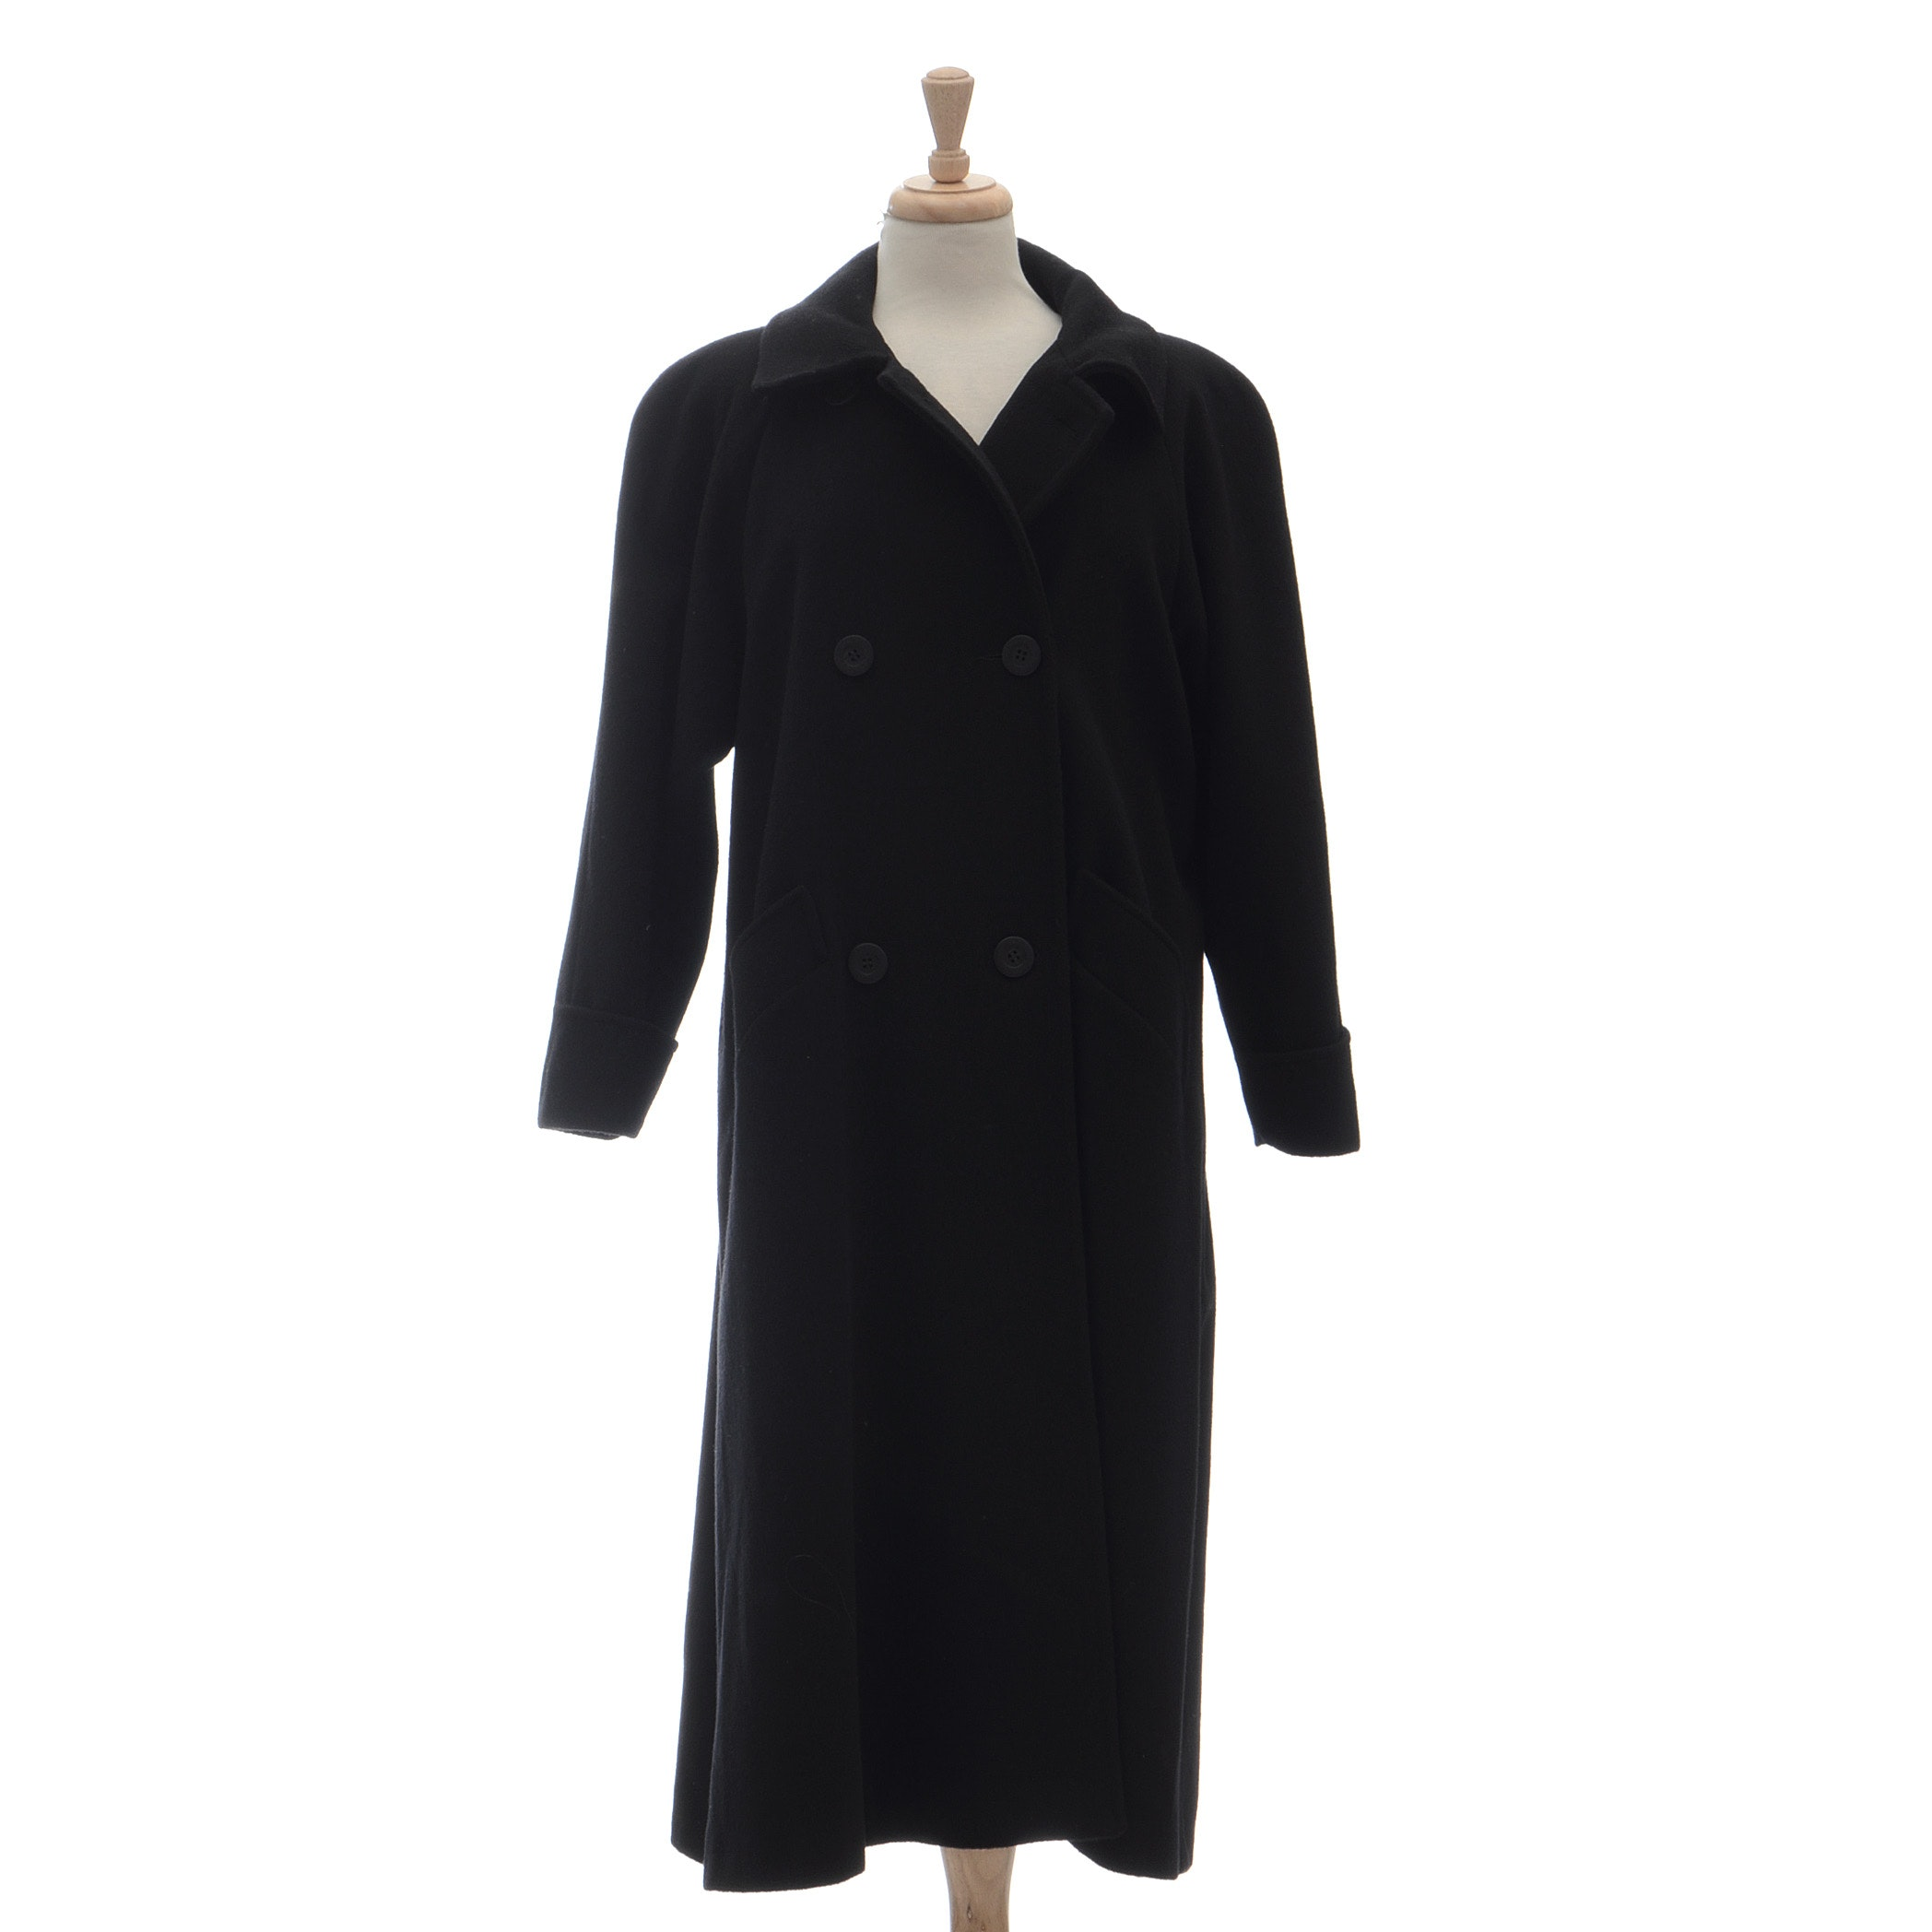 Black Double Breasted Dress Coat